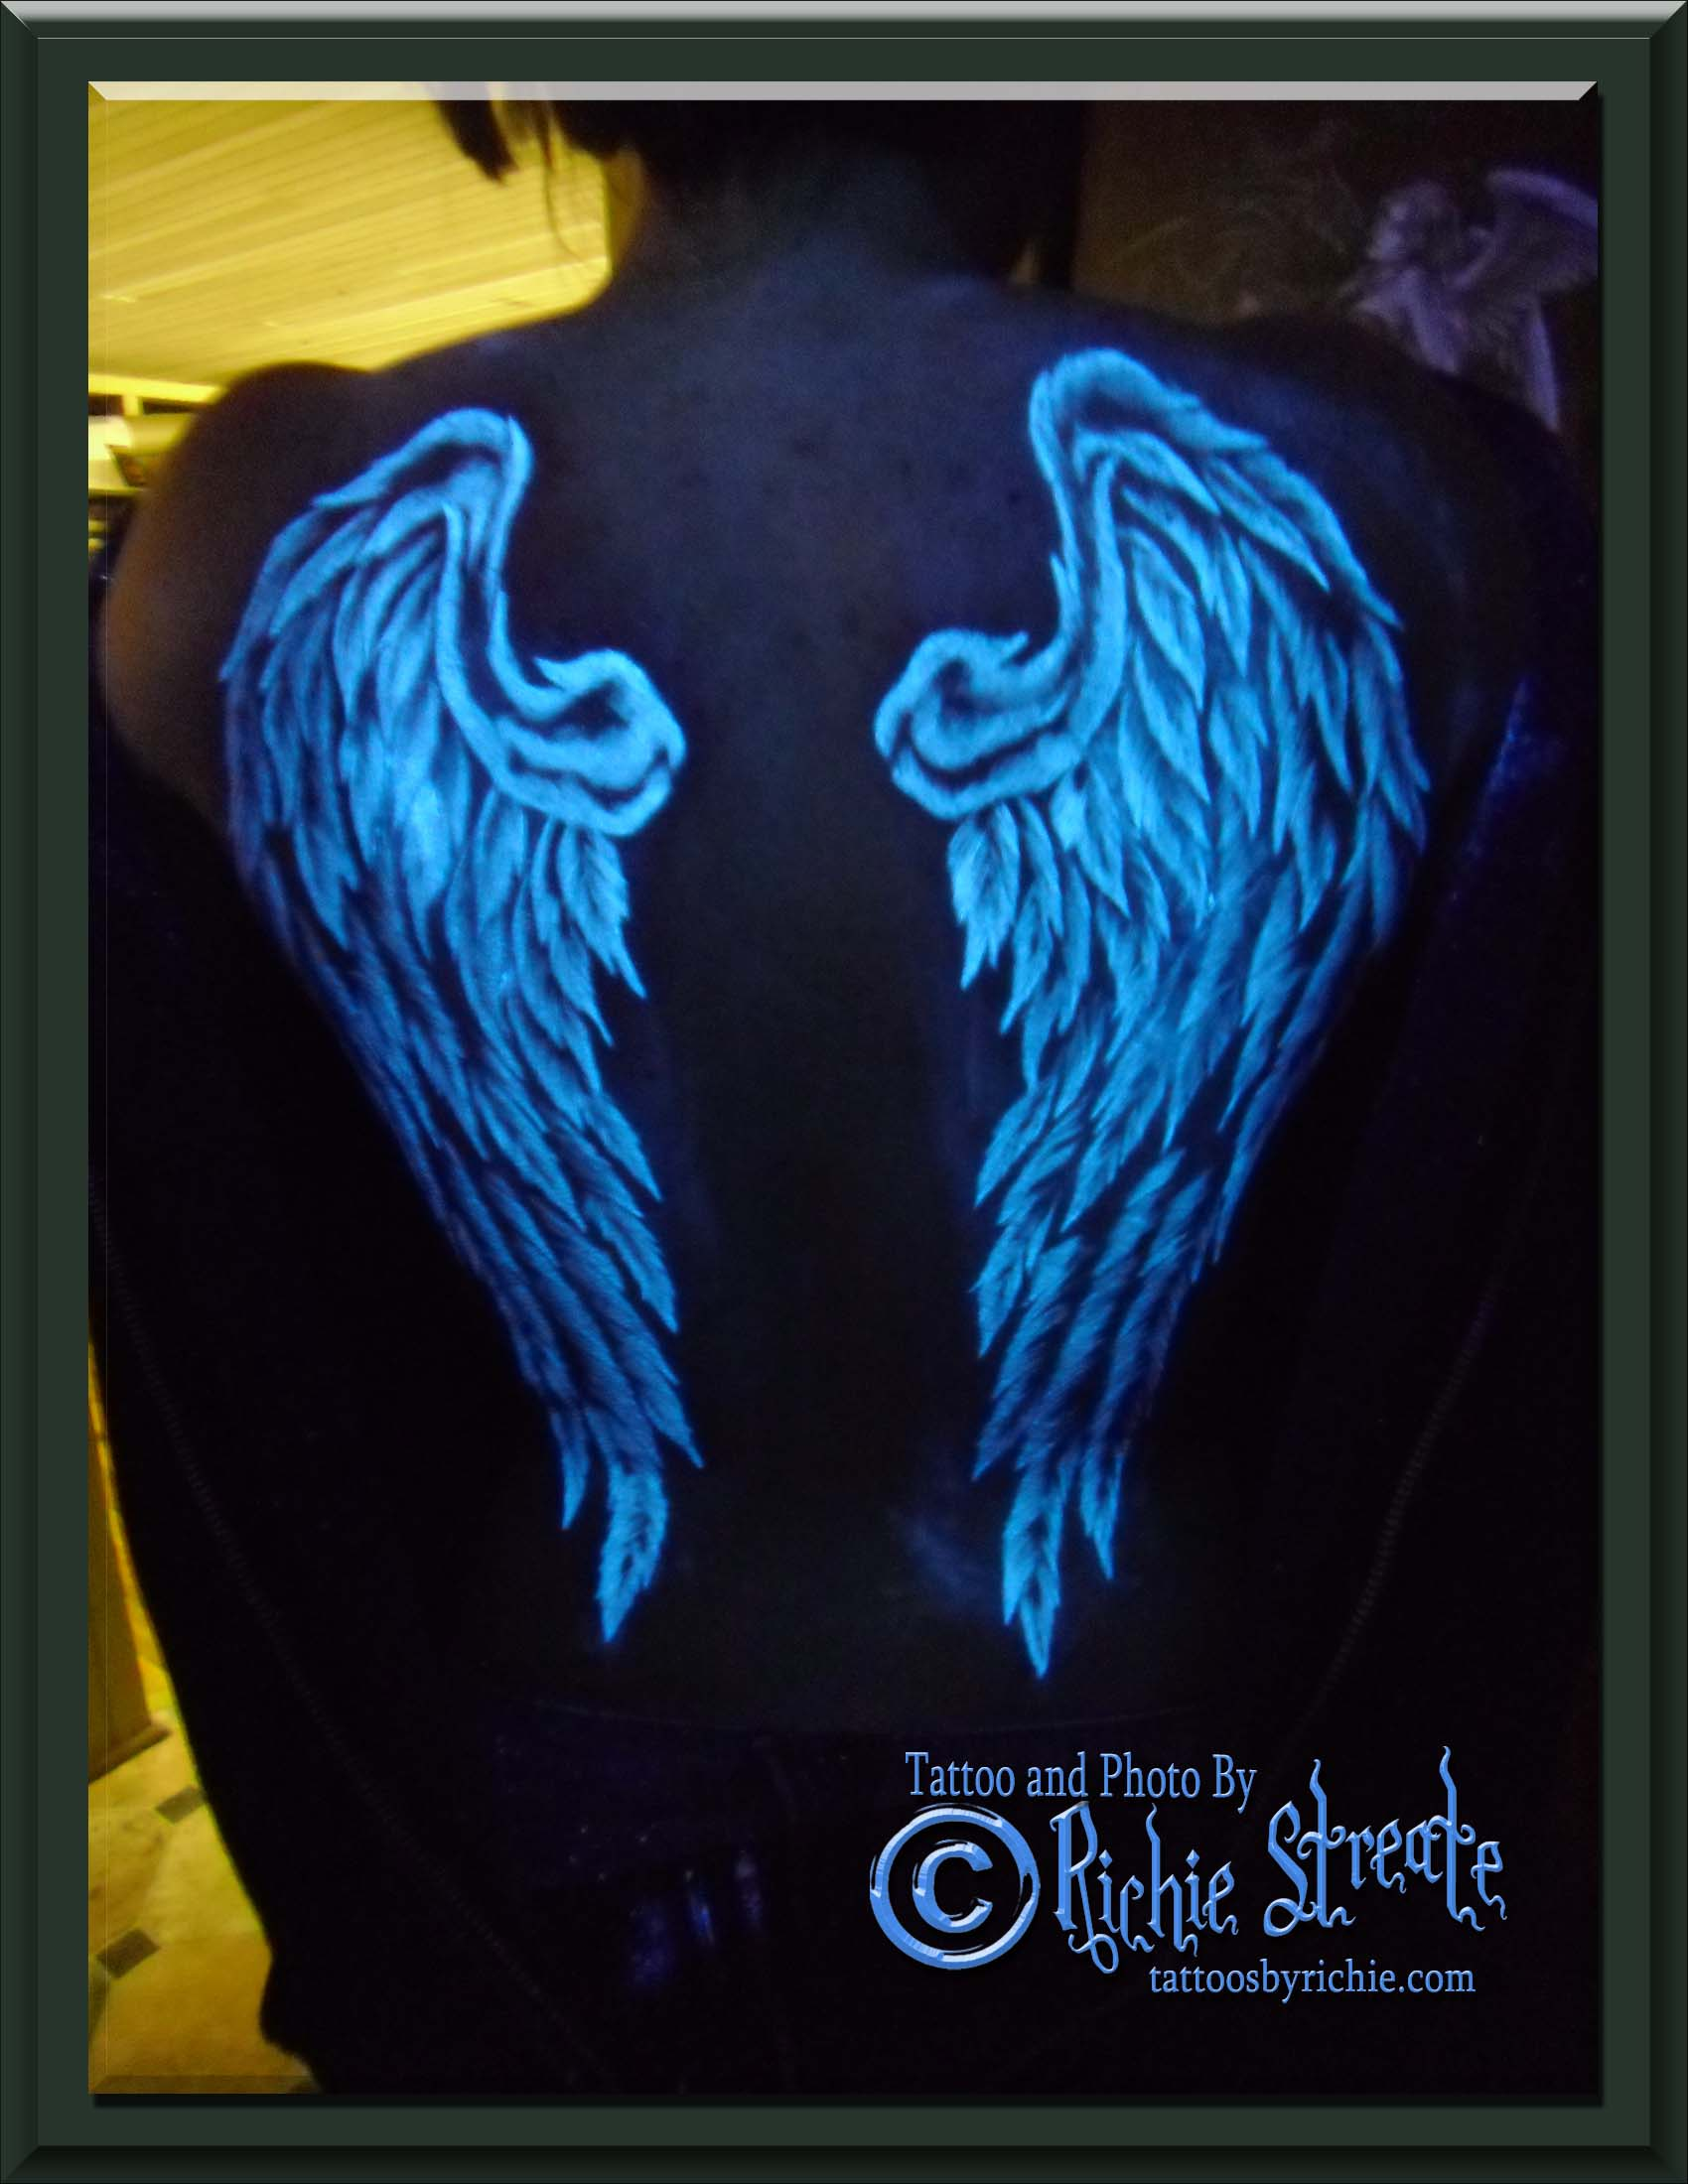 UV Blacklight Wings Tattoo - Blood Borne Pathogen ...